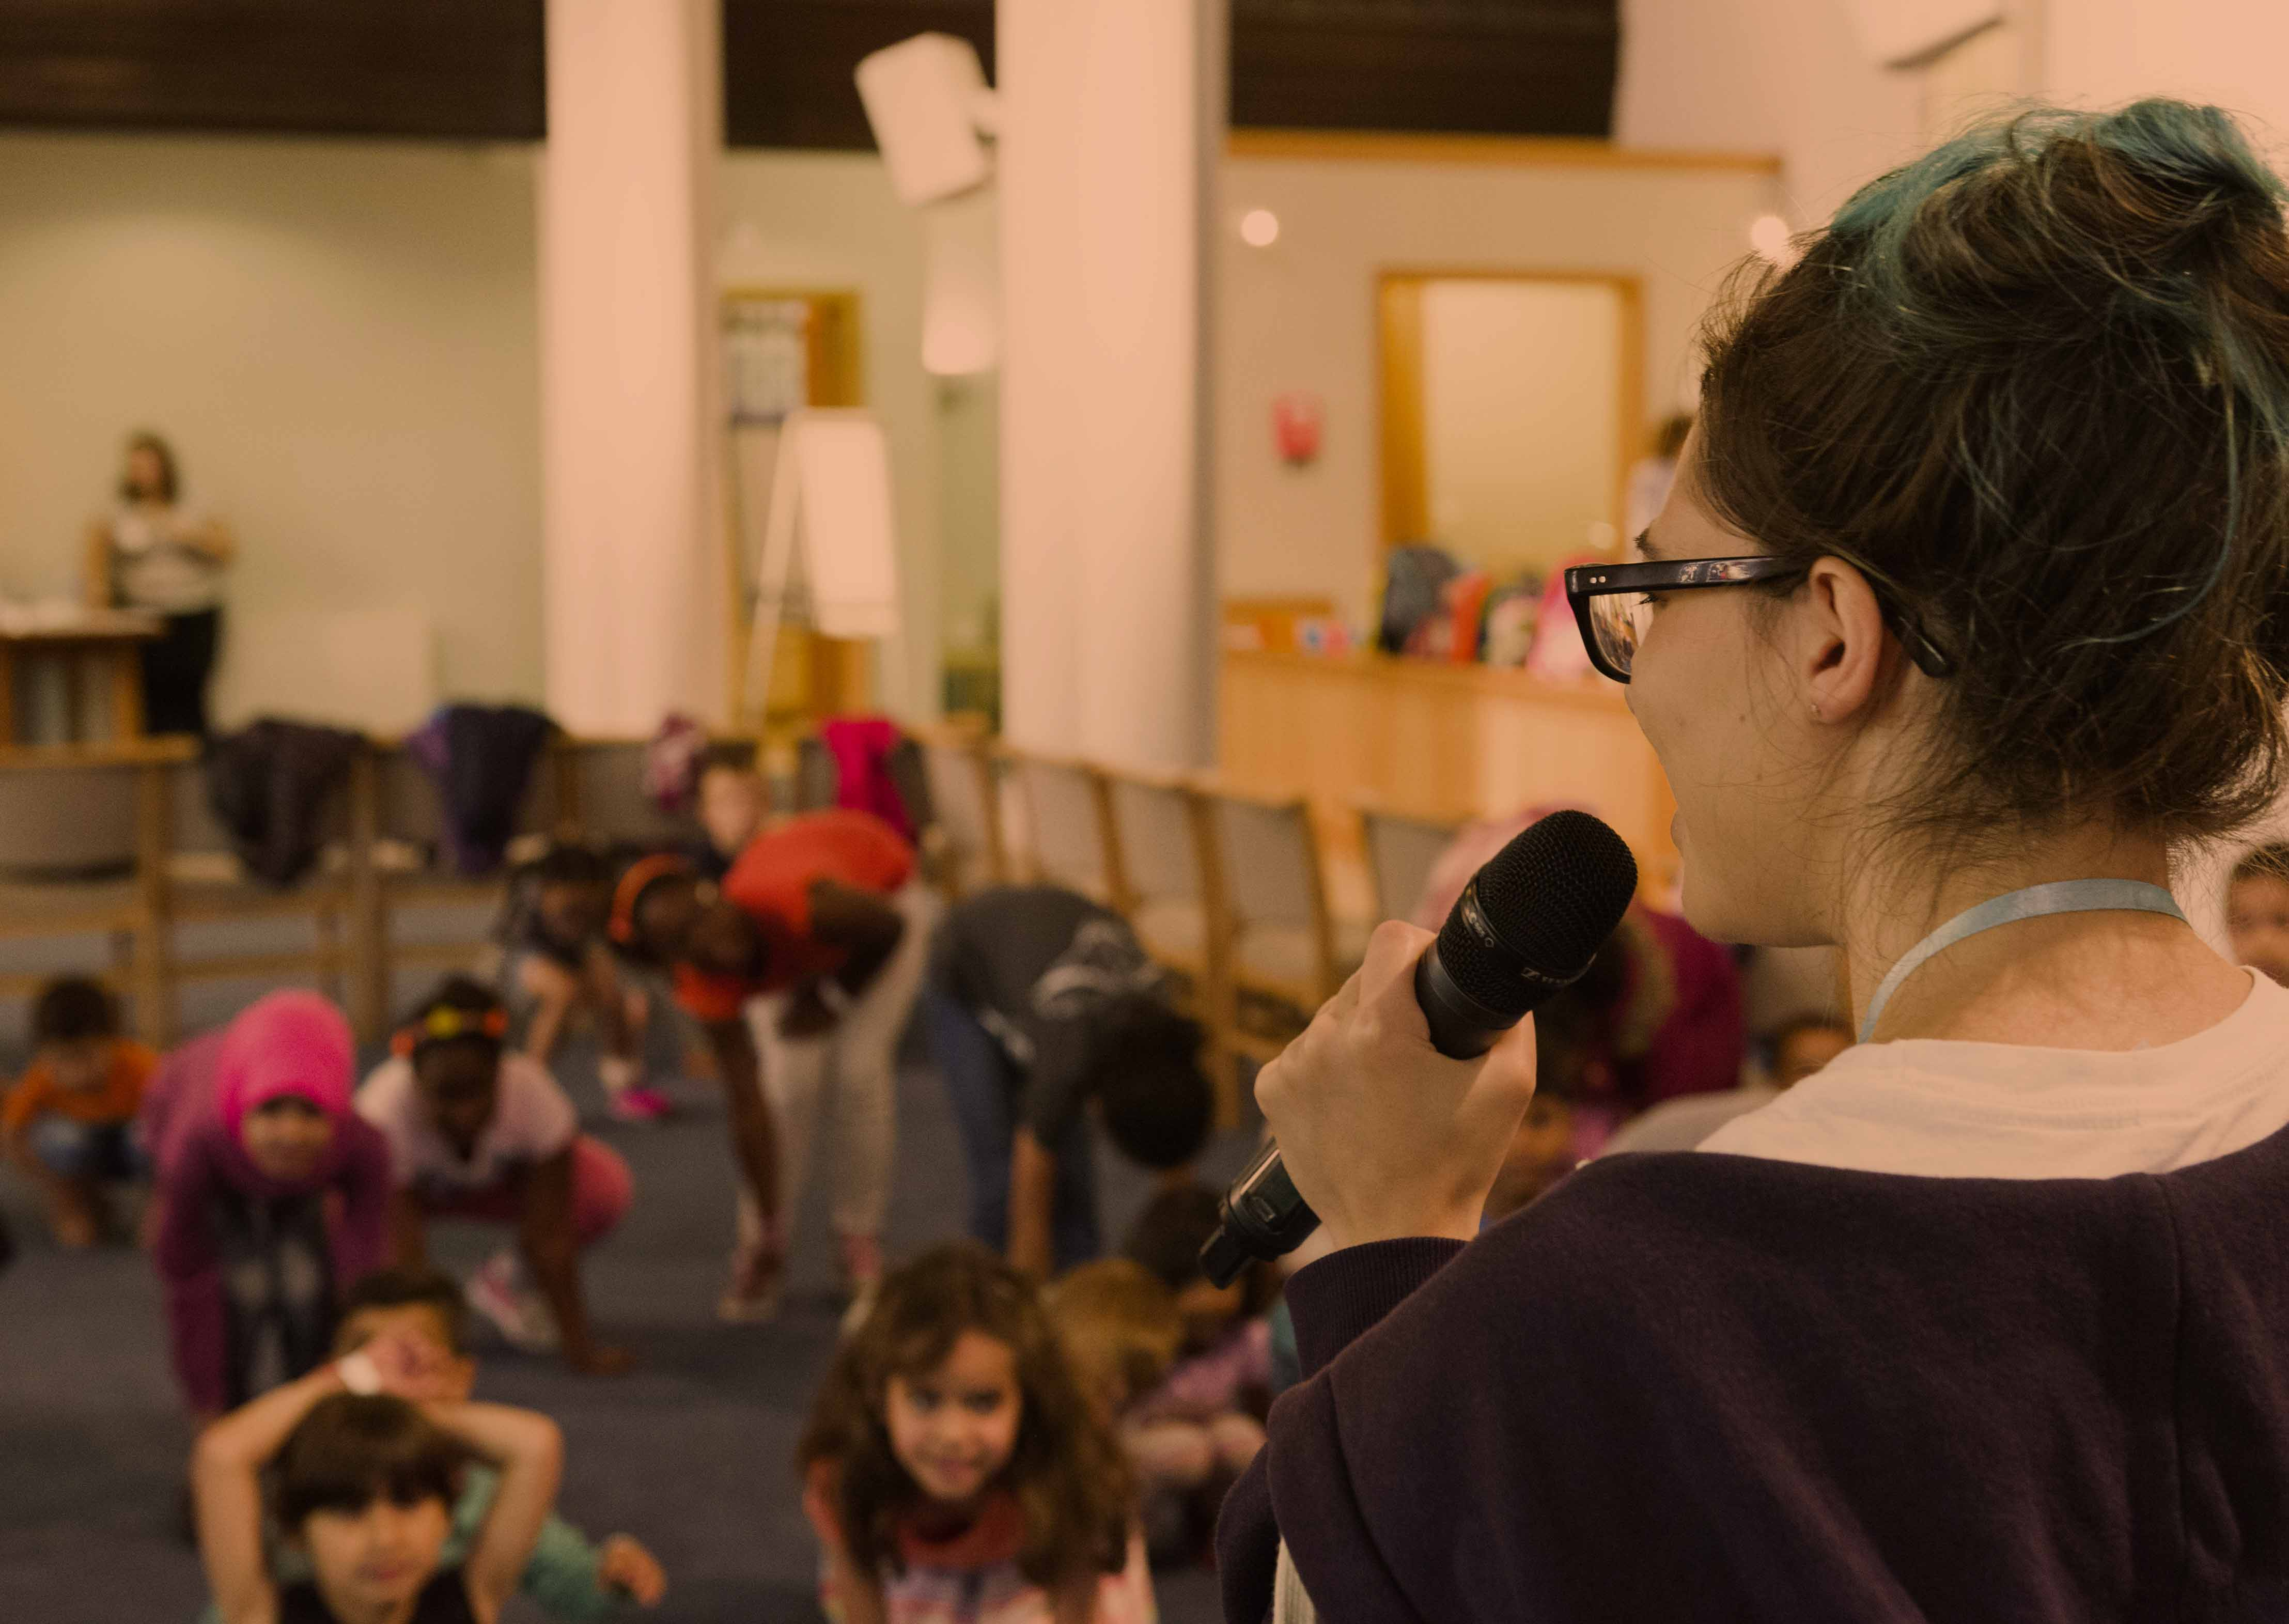 Children and young people | The Church of England